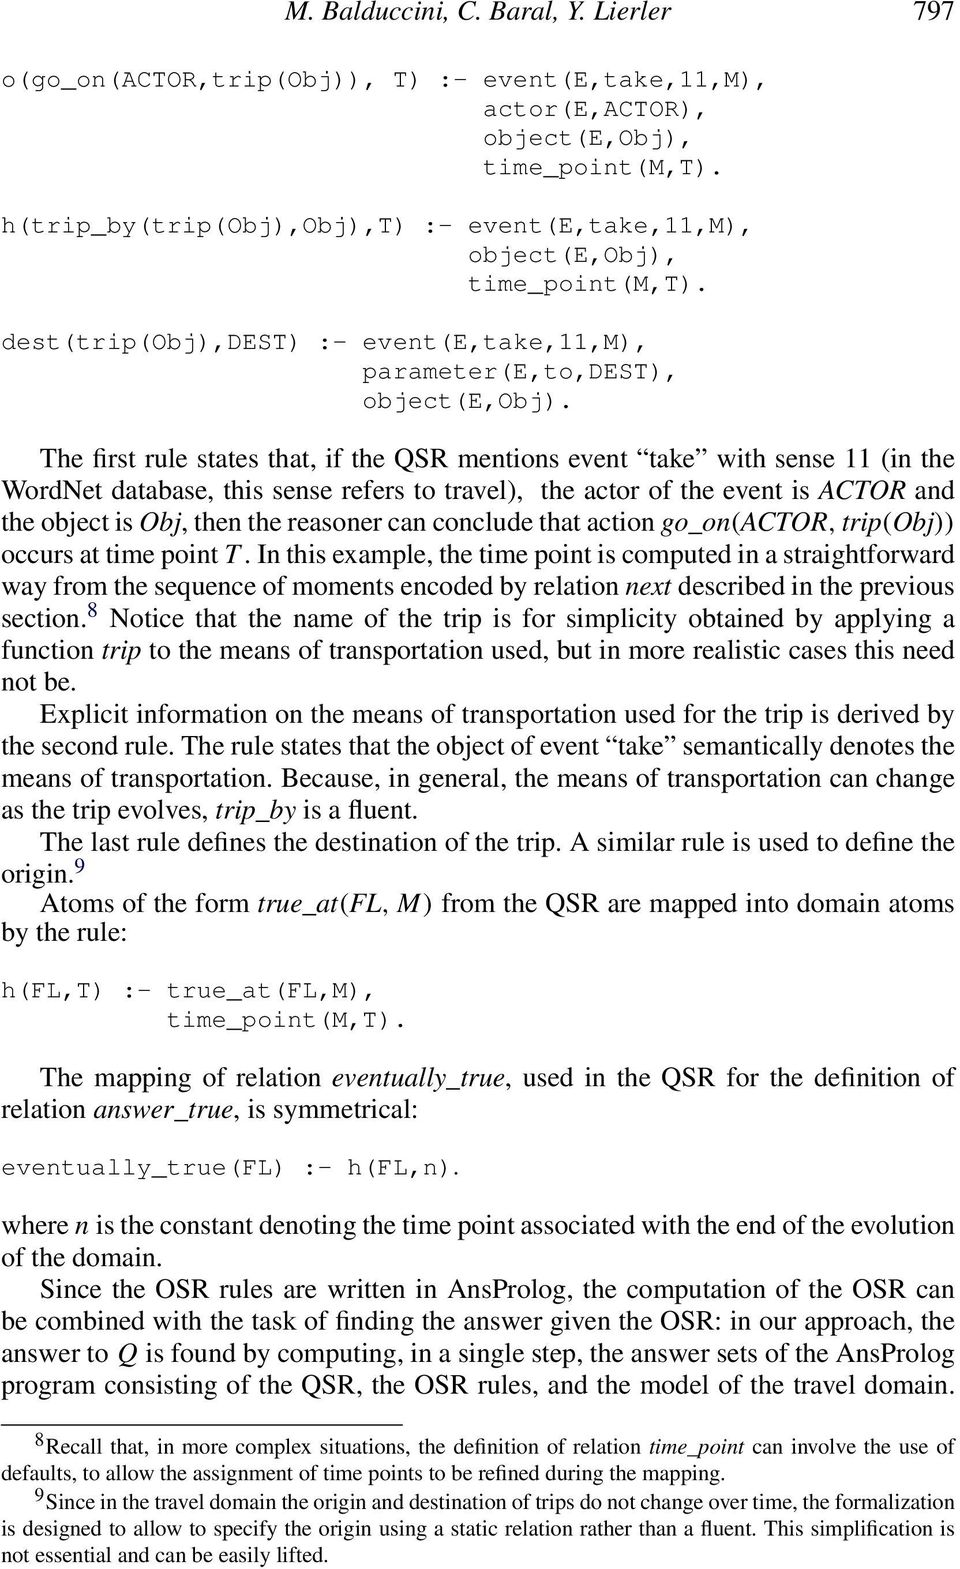 The first rule states that, if the QSR mentions event take with sense 11 (in the WordNet database, this sense refers to travel), the actor of the event is ACTOR and the object is Obj, then the